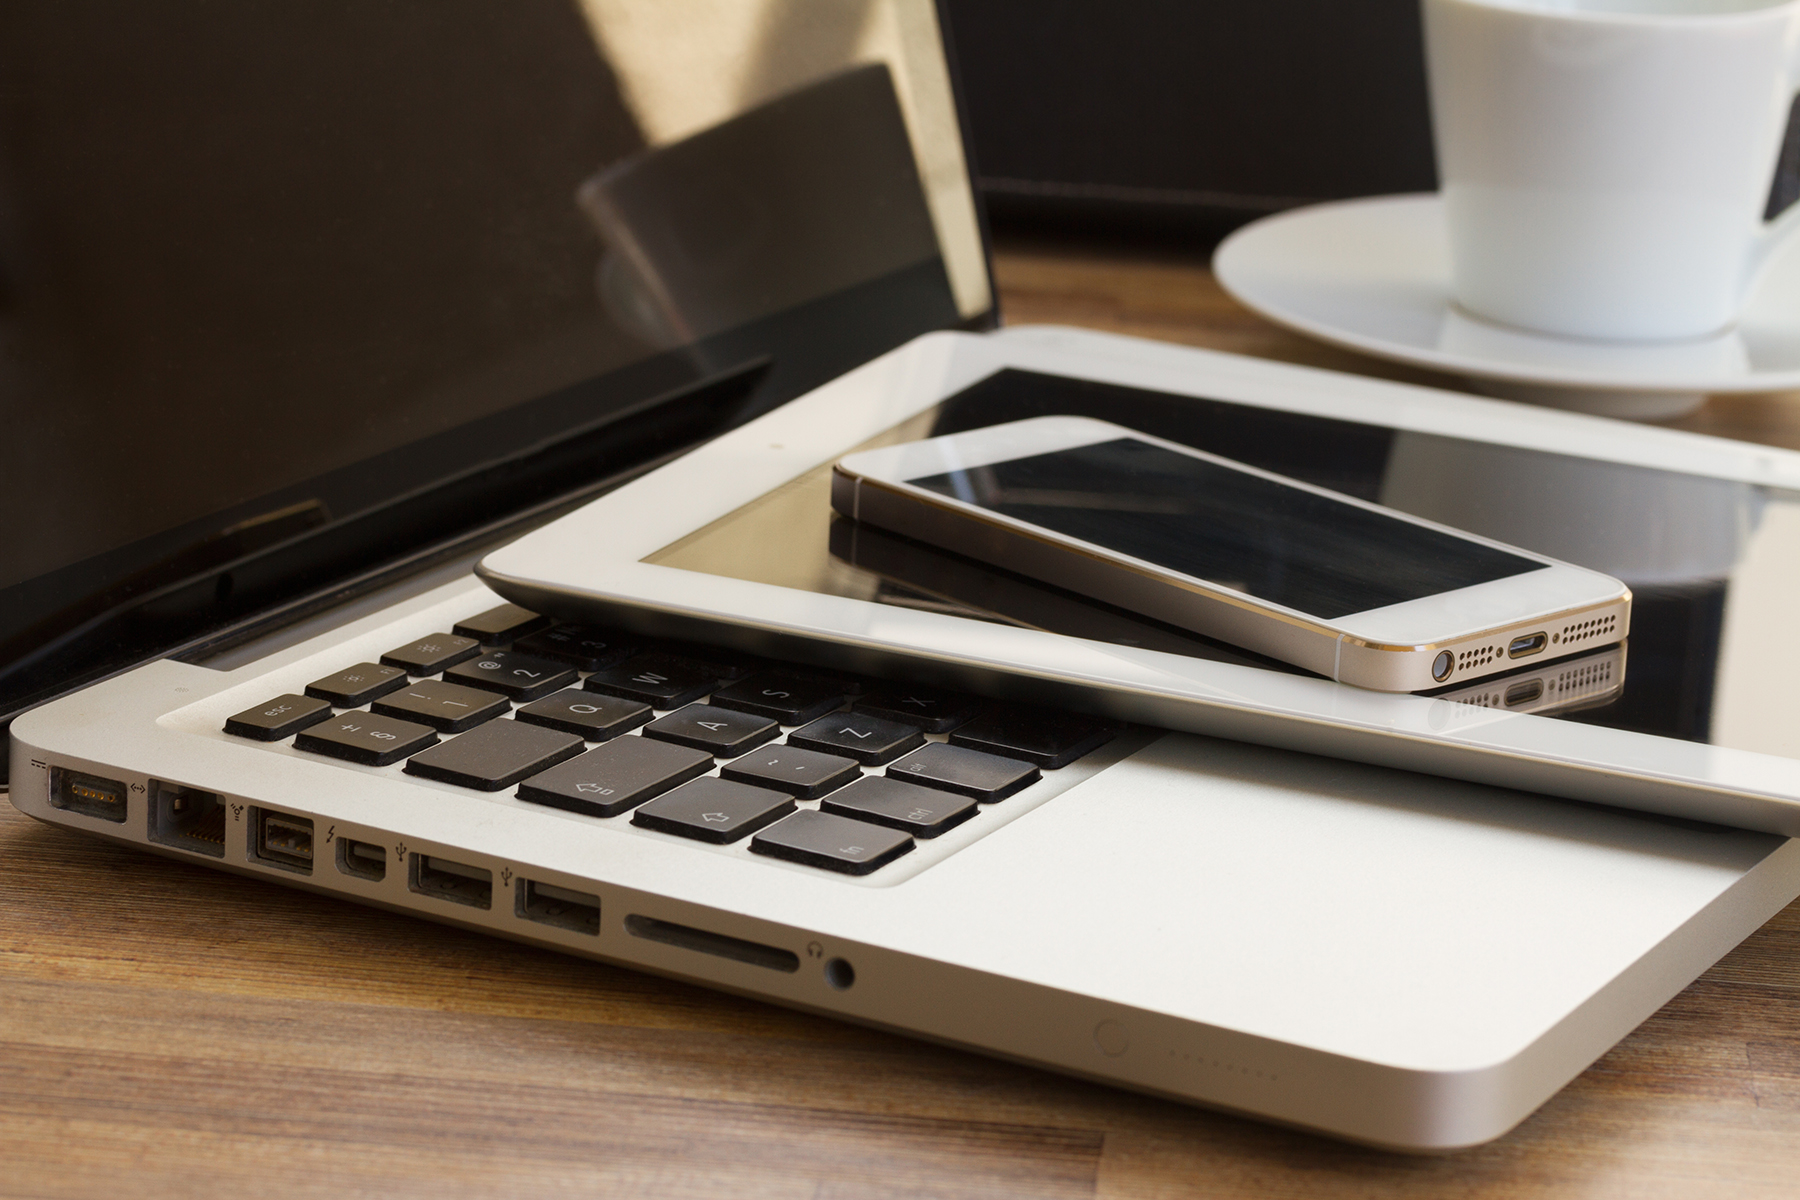 6 tips for efficient teleworking